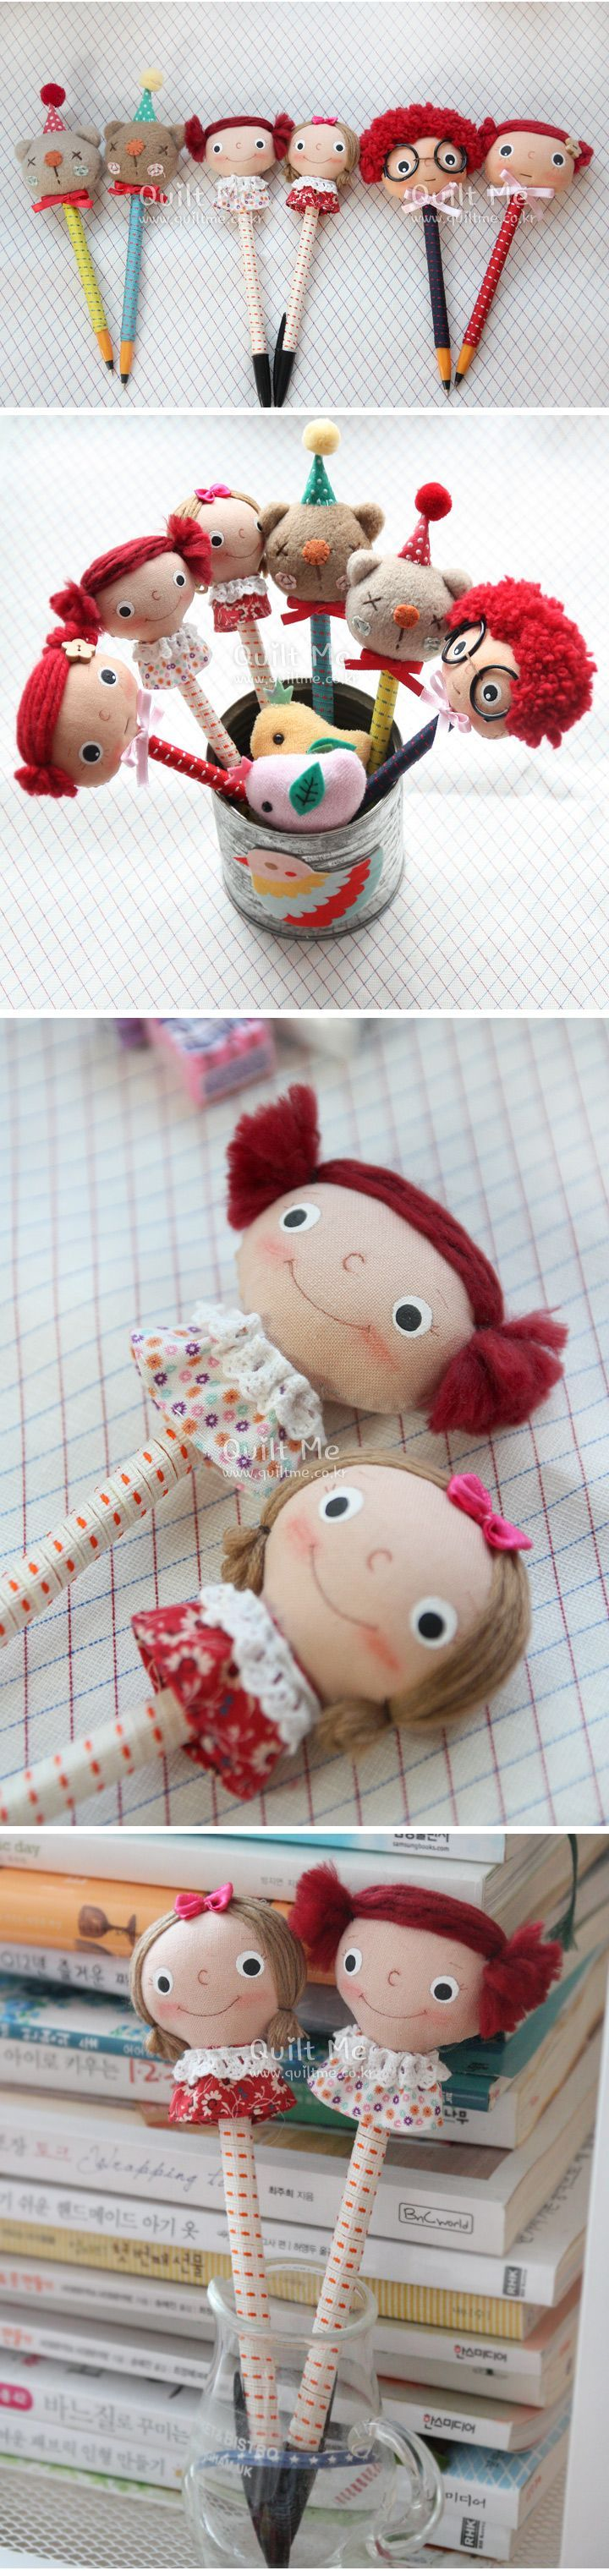 what a cute set of pencil toppers! I'd love to have one.: